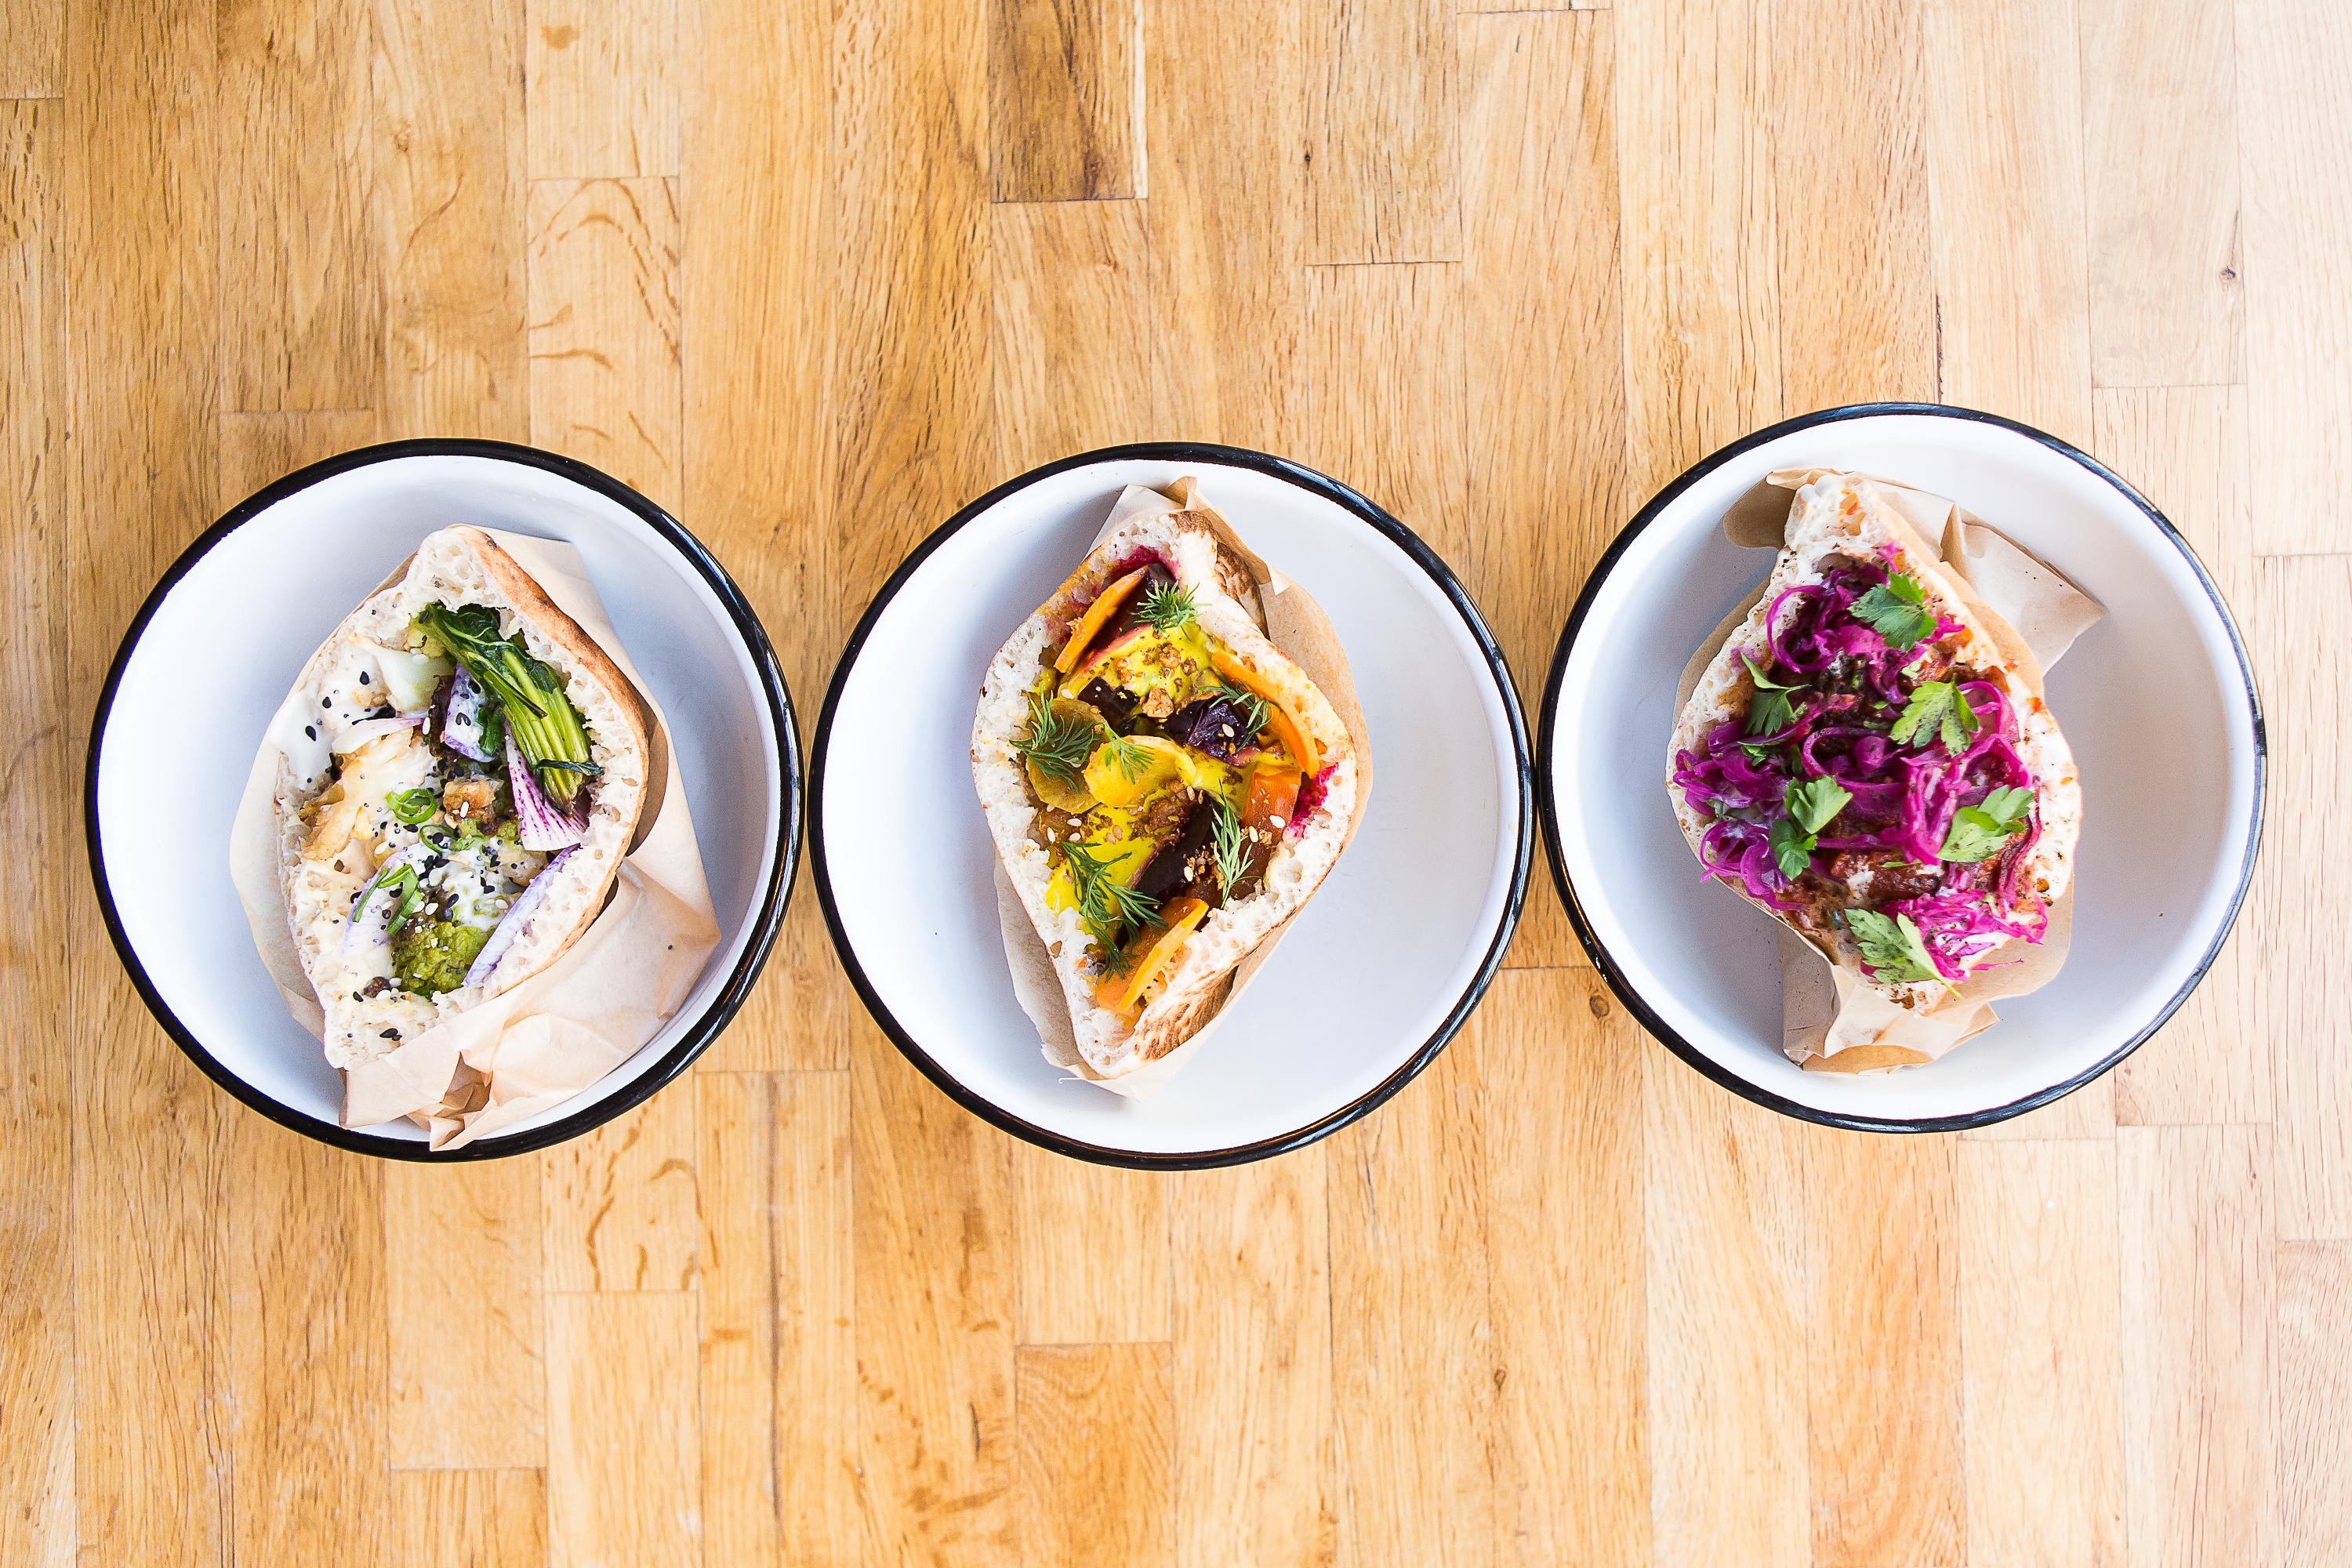 Food here comes in one of two forms: a hummus bowl or a pita sandwich.(Image: Anna Meyer)